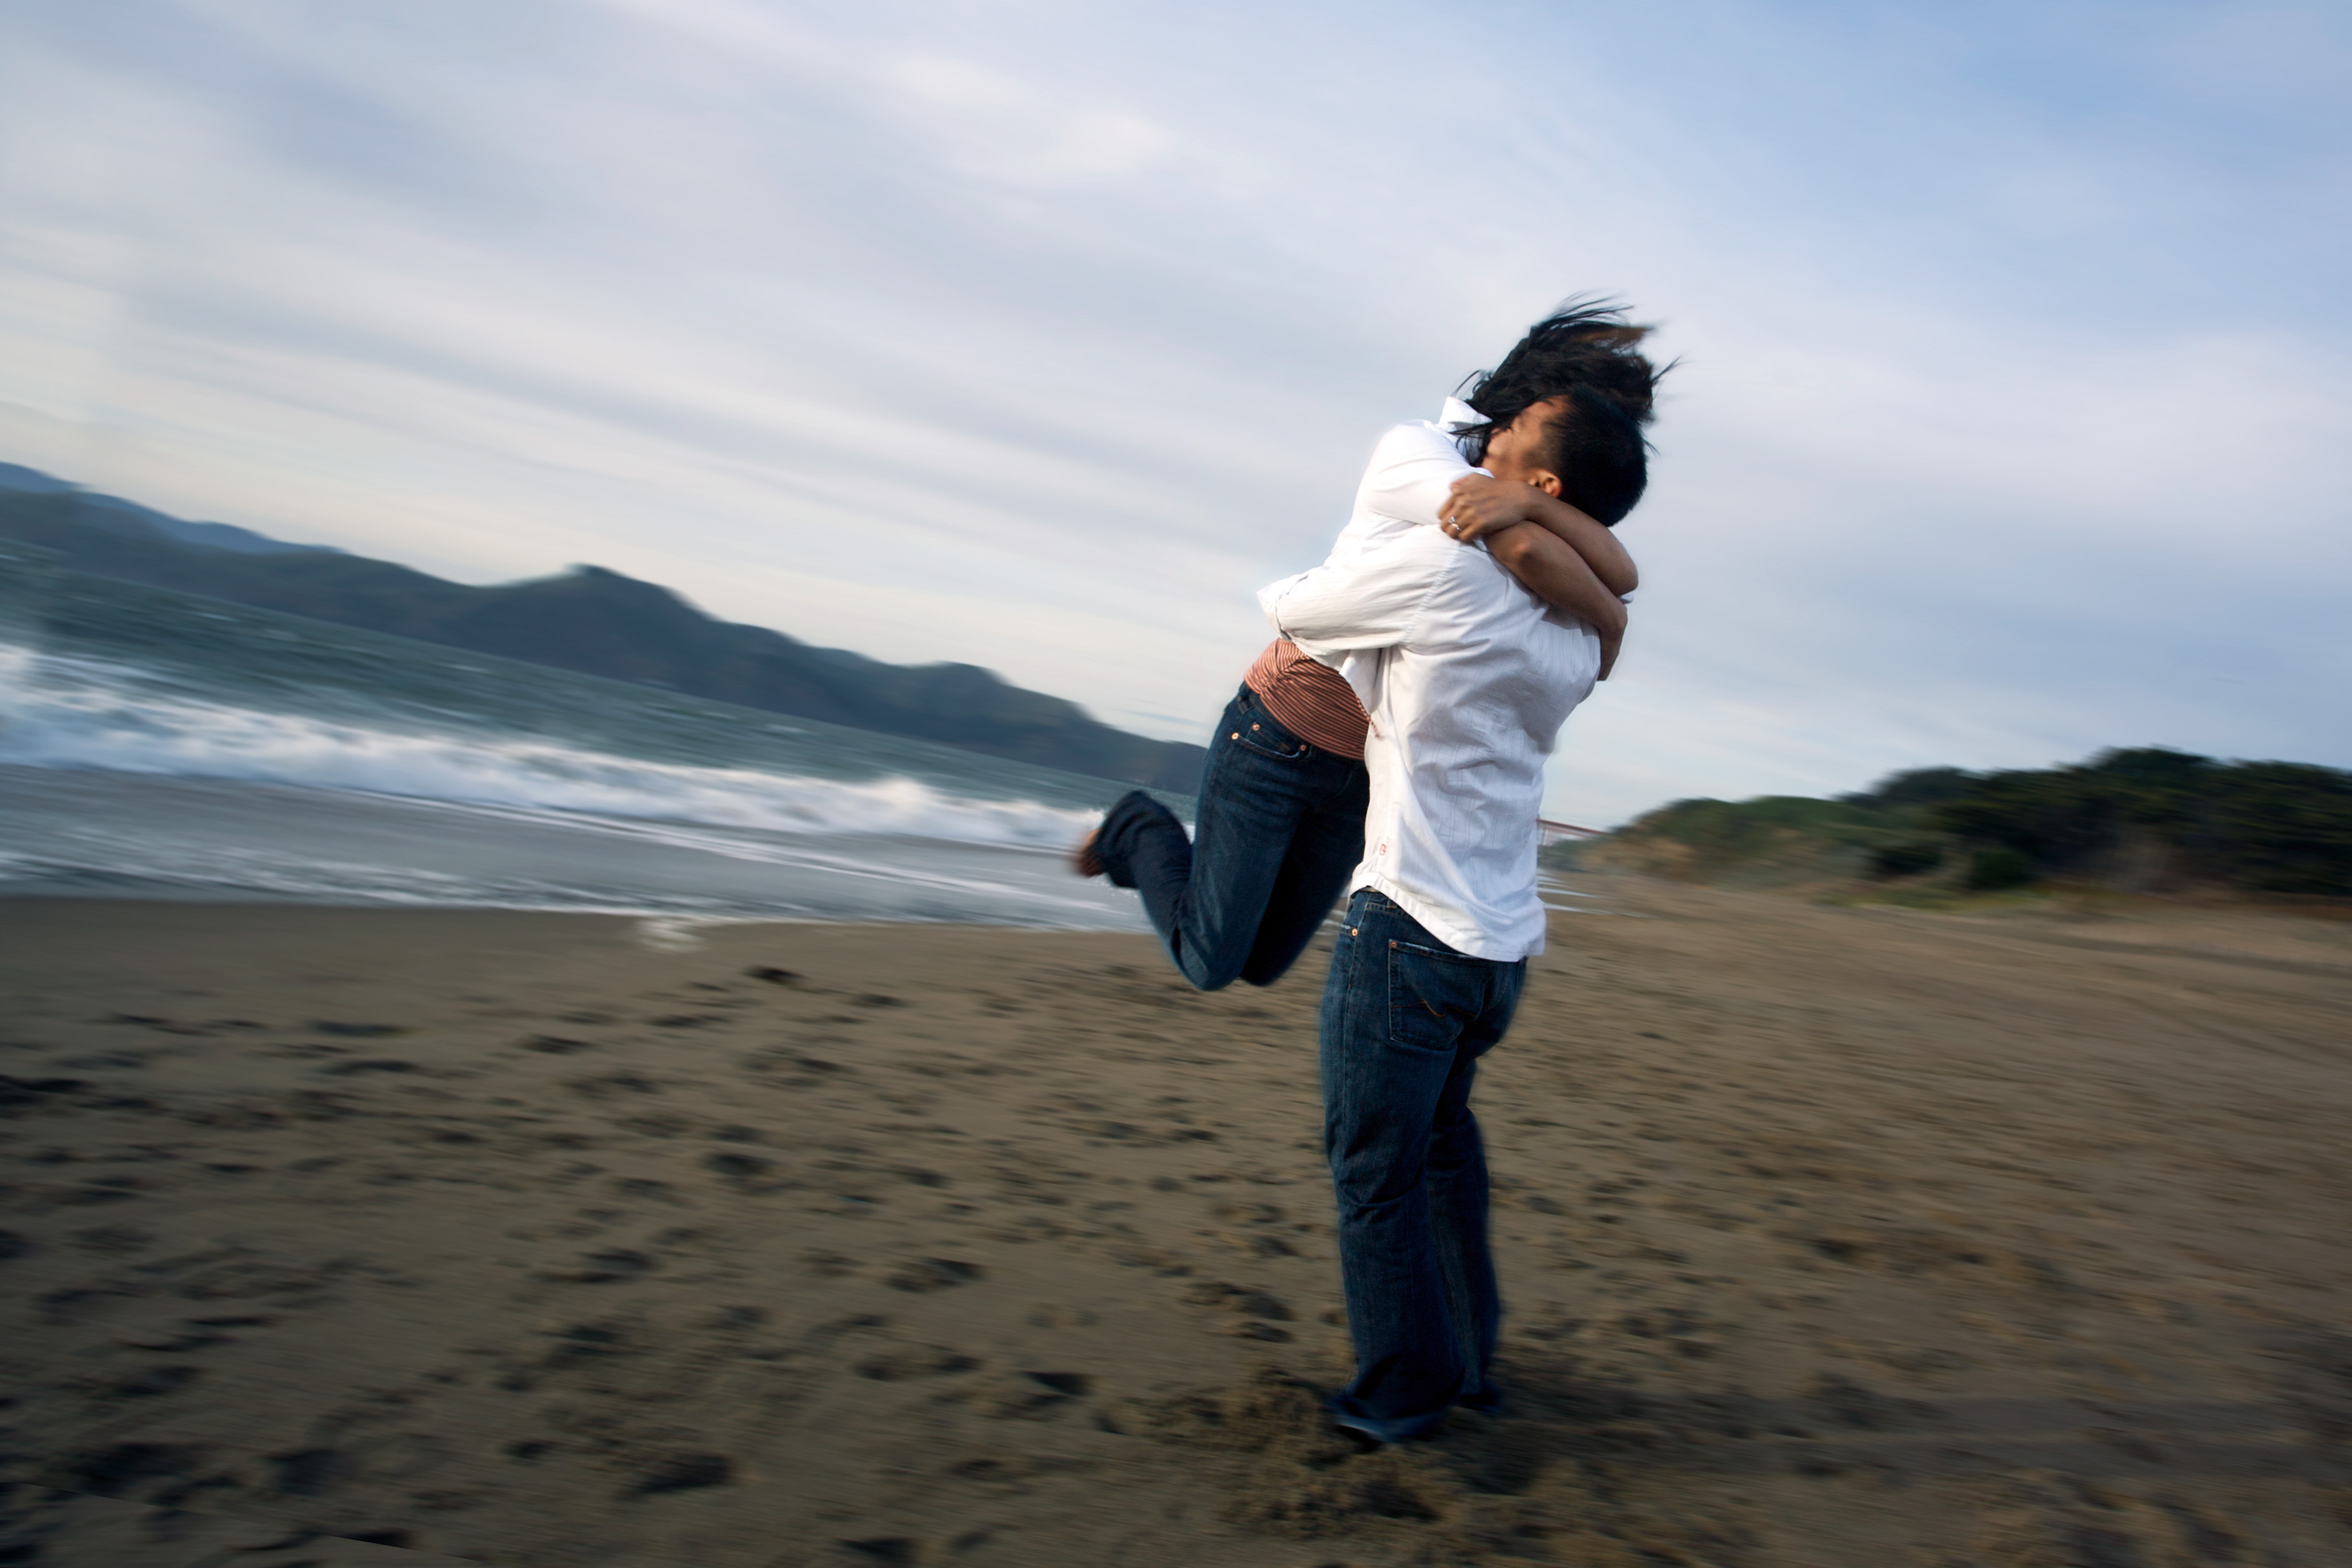 hugging someone beach hug wikimedia commons happier ten tips file oxytocin seconds trust releases pixels which holding forgive past seekyt